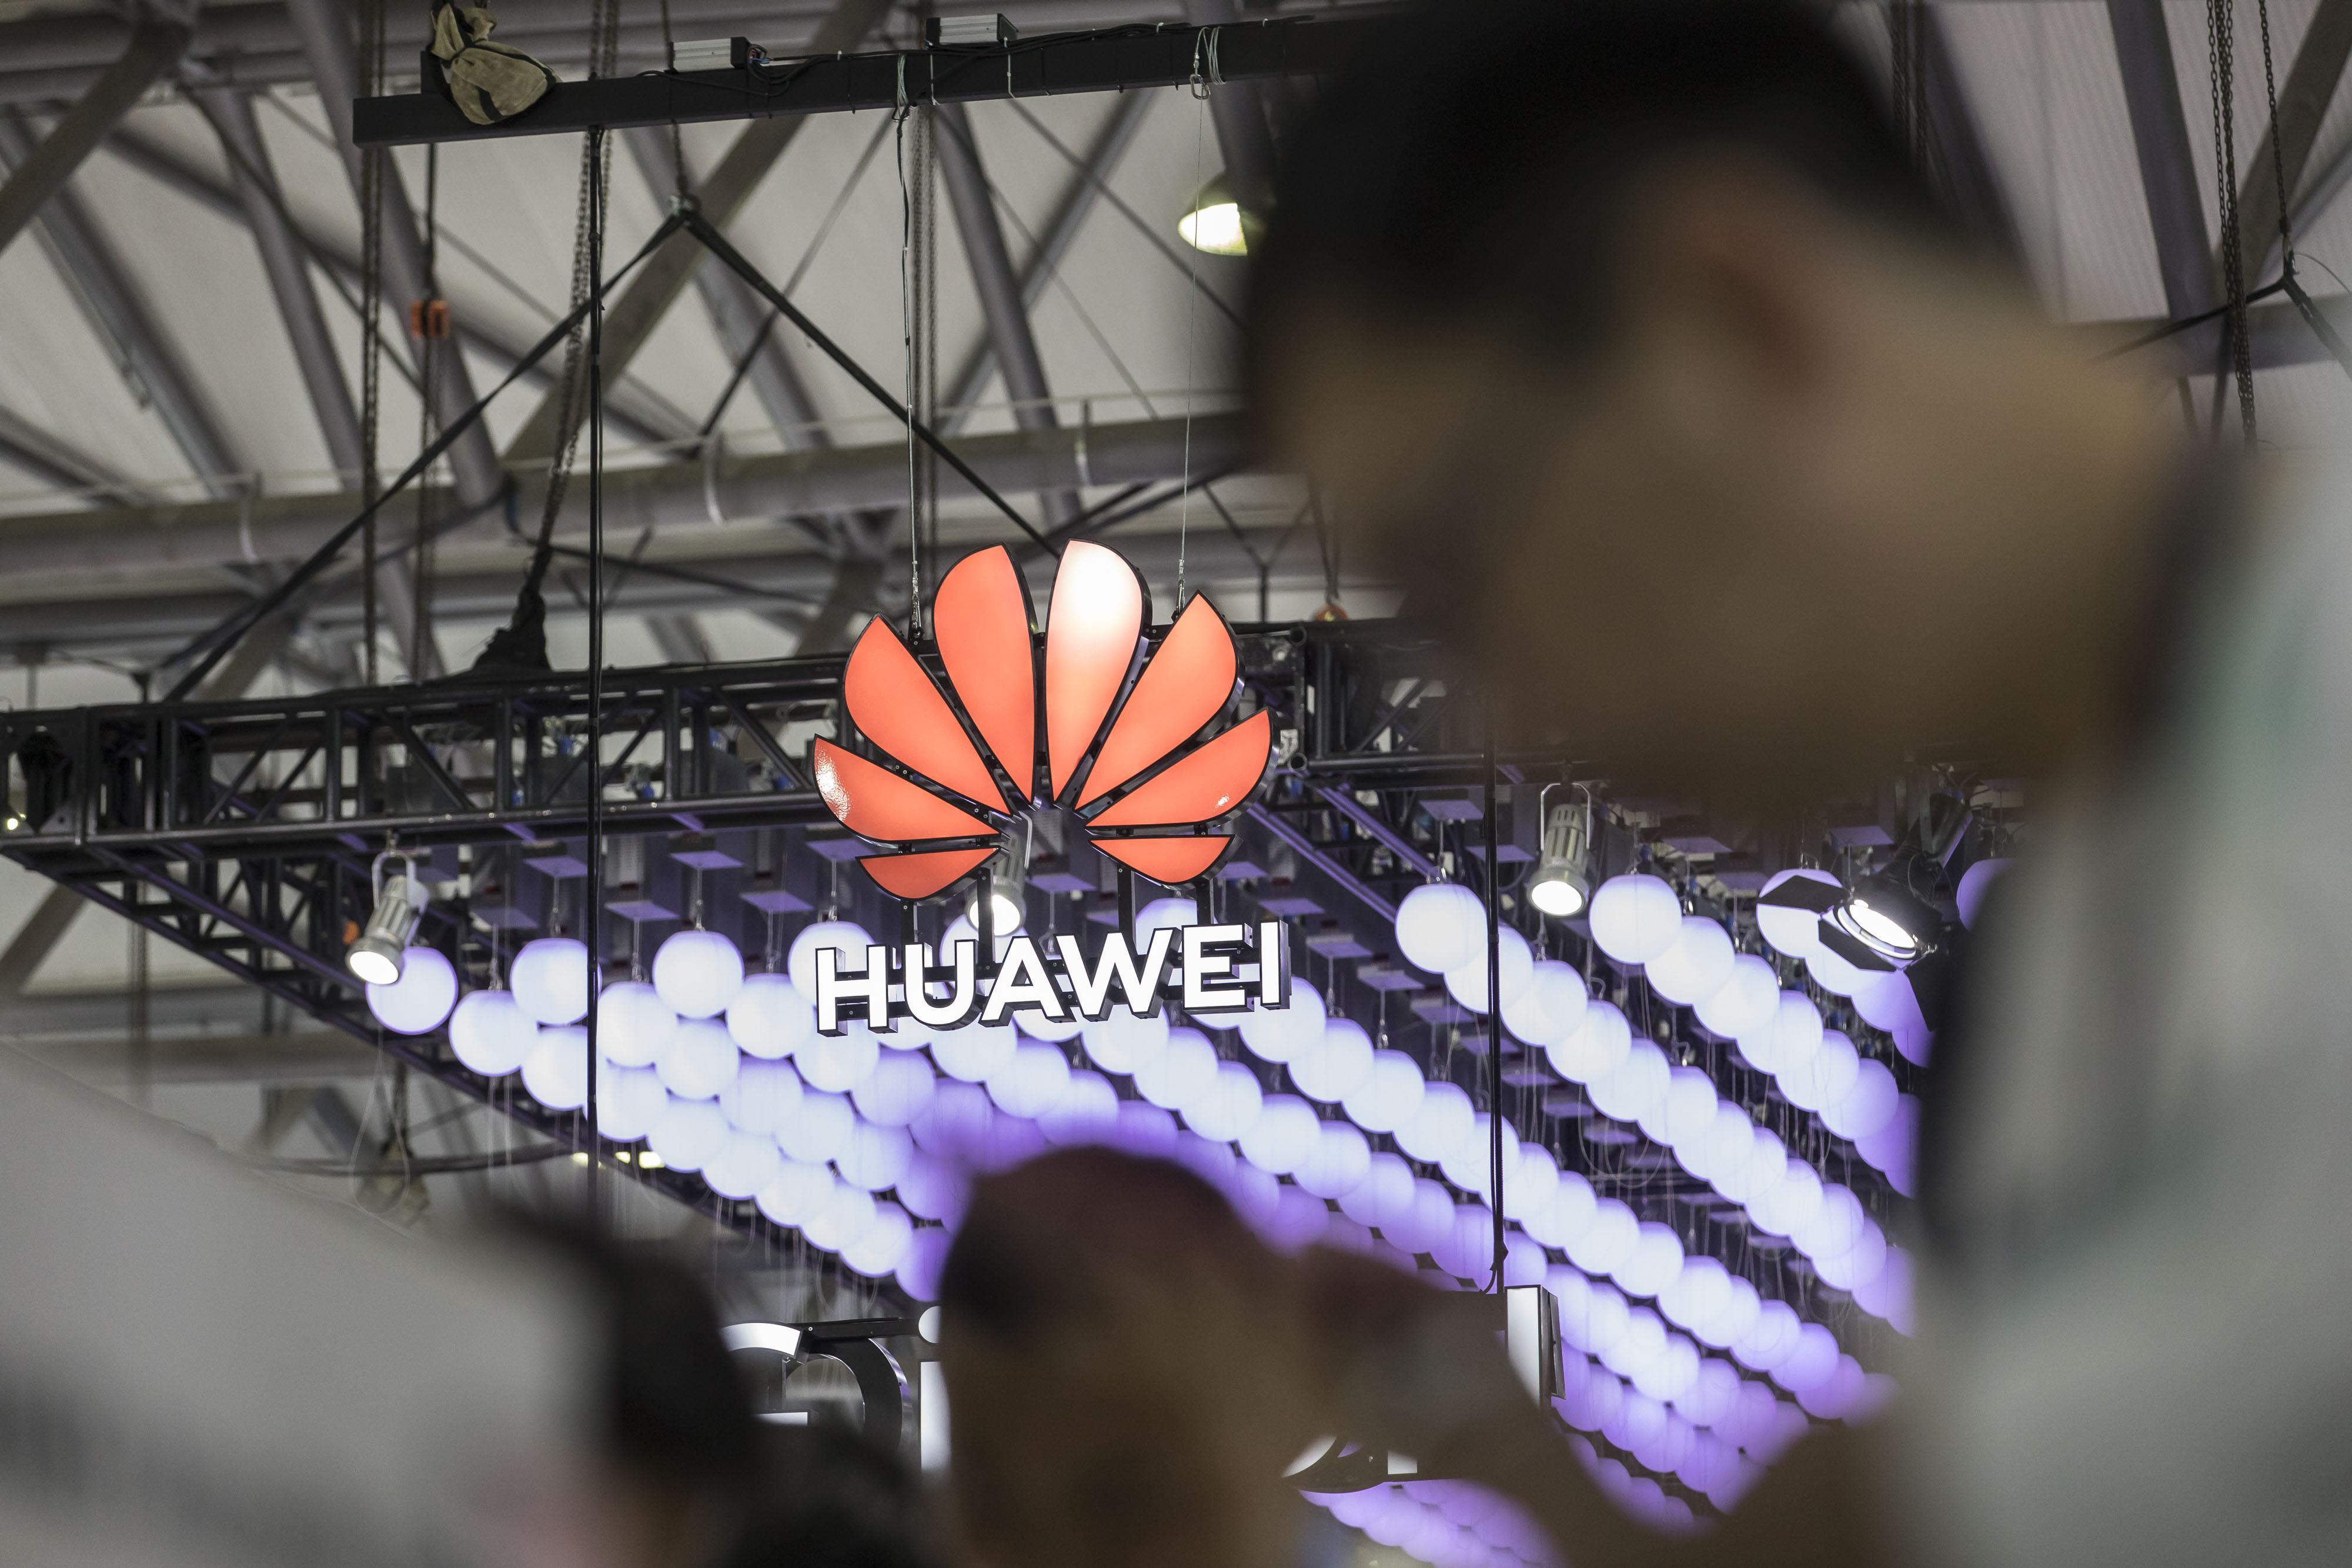 Facing US ban, Huawei emerging as stronger tech competitor